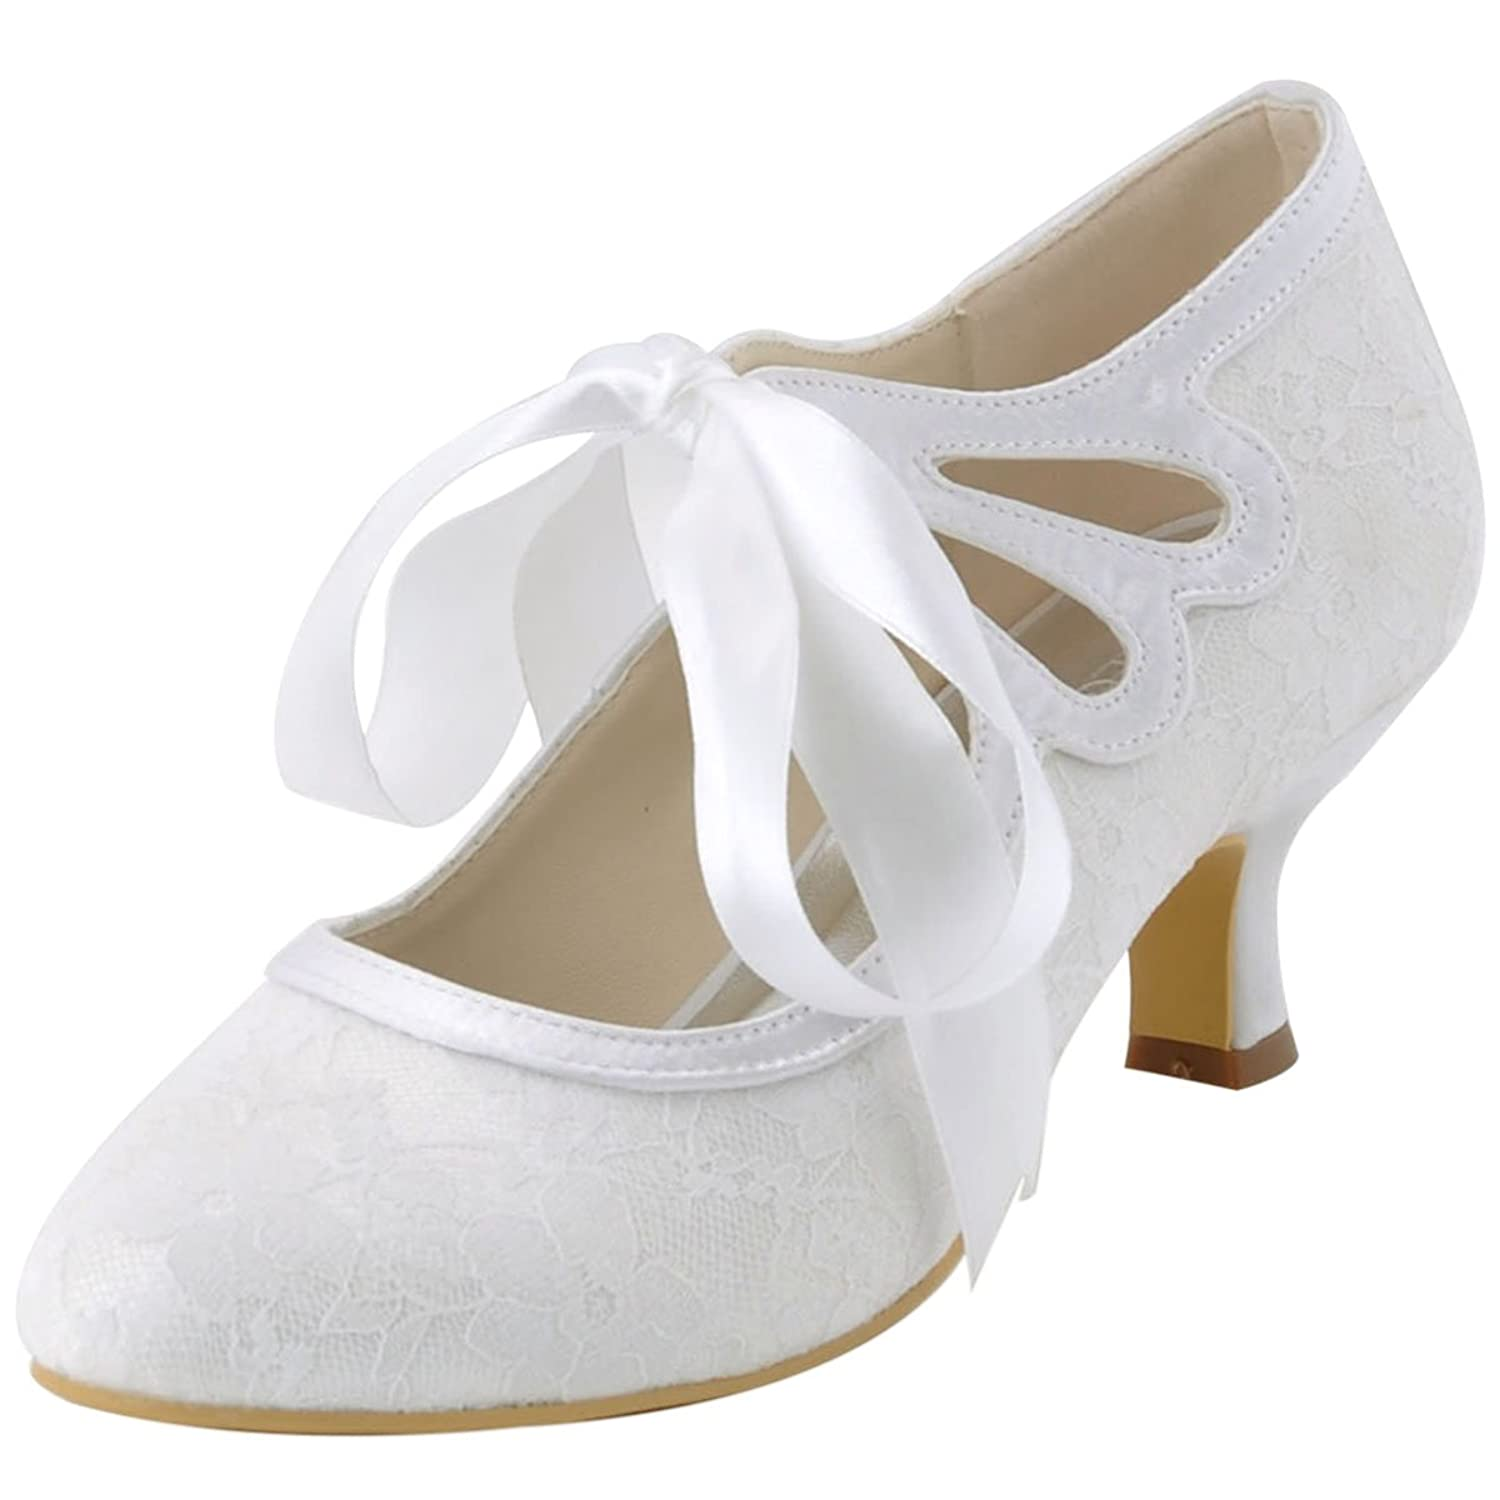 Formal Flats for Wedding Dress